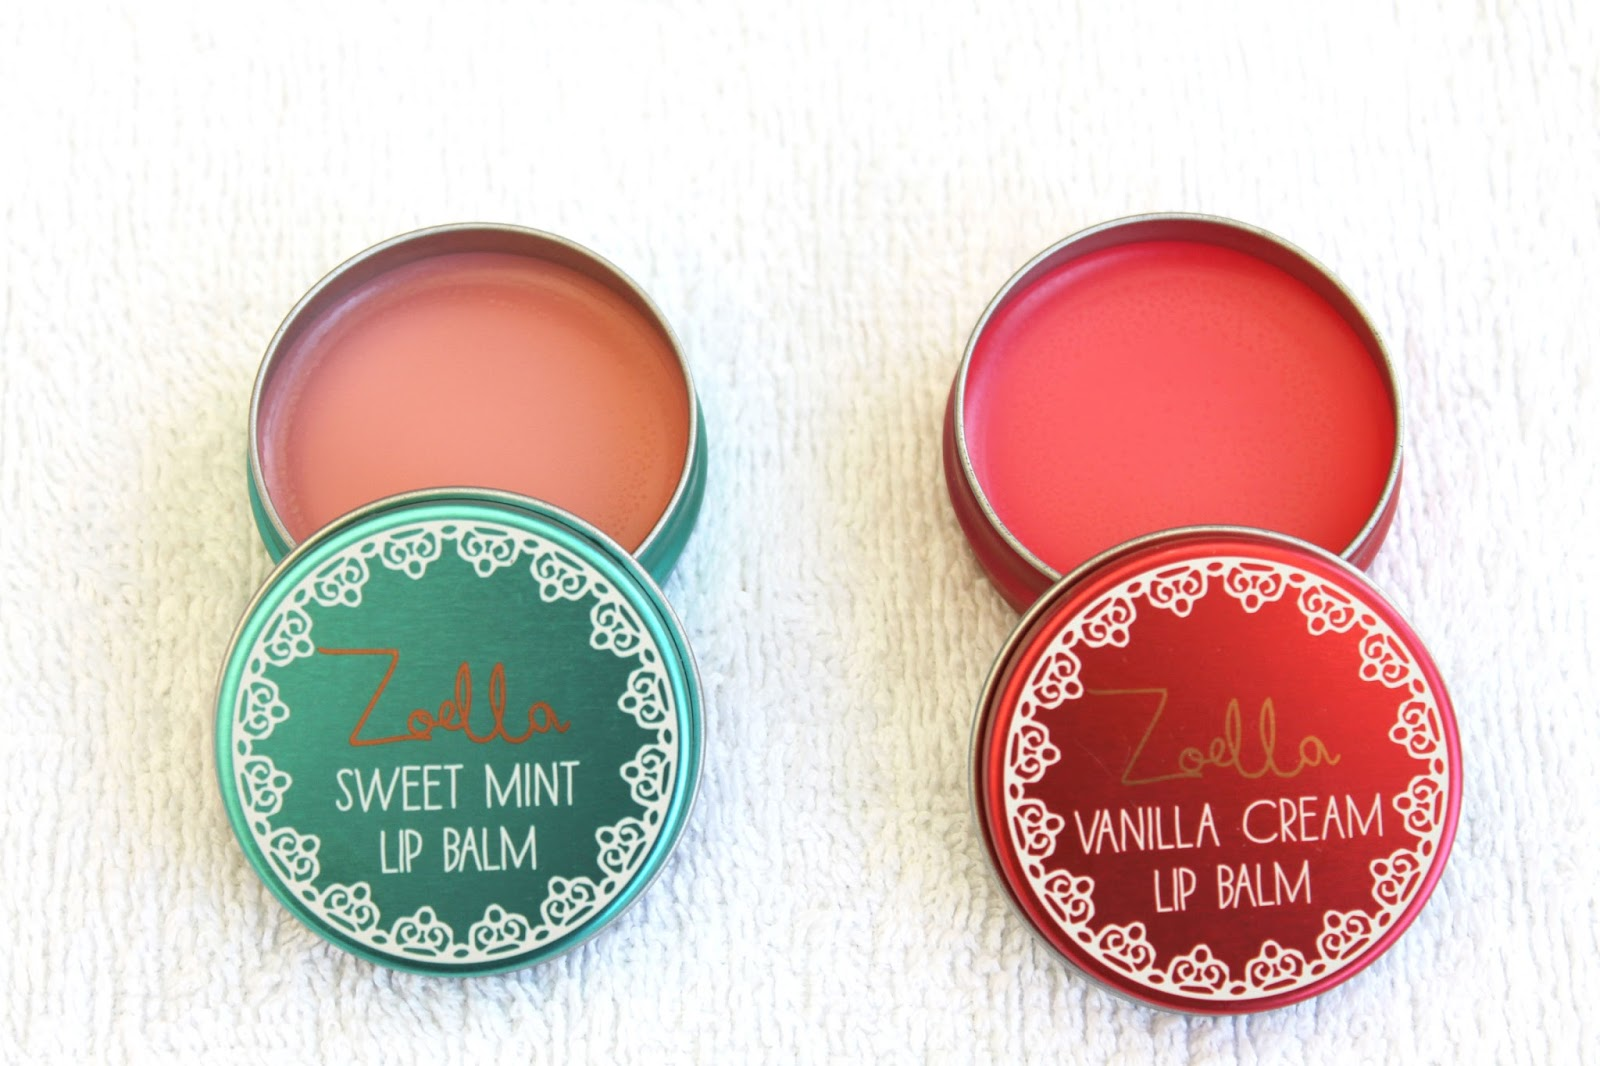 Zoella Beauty Two Balmy